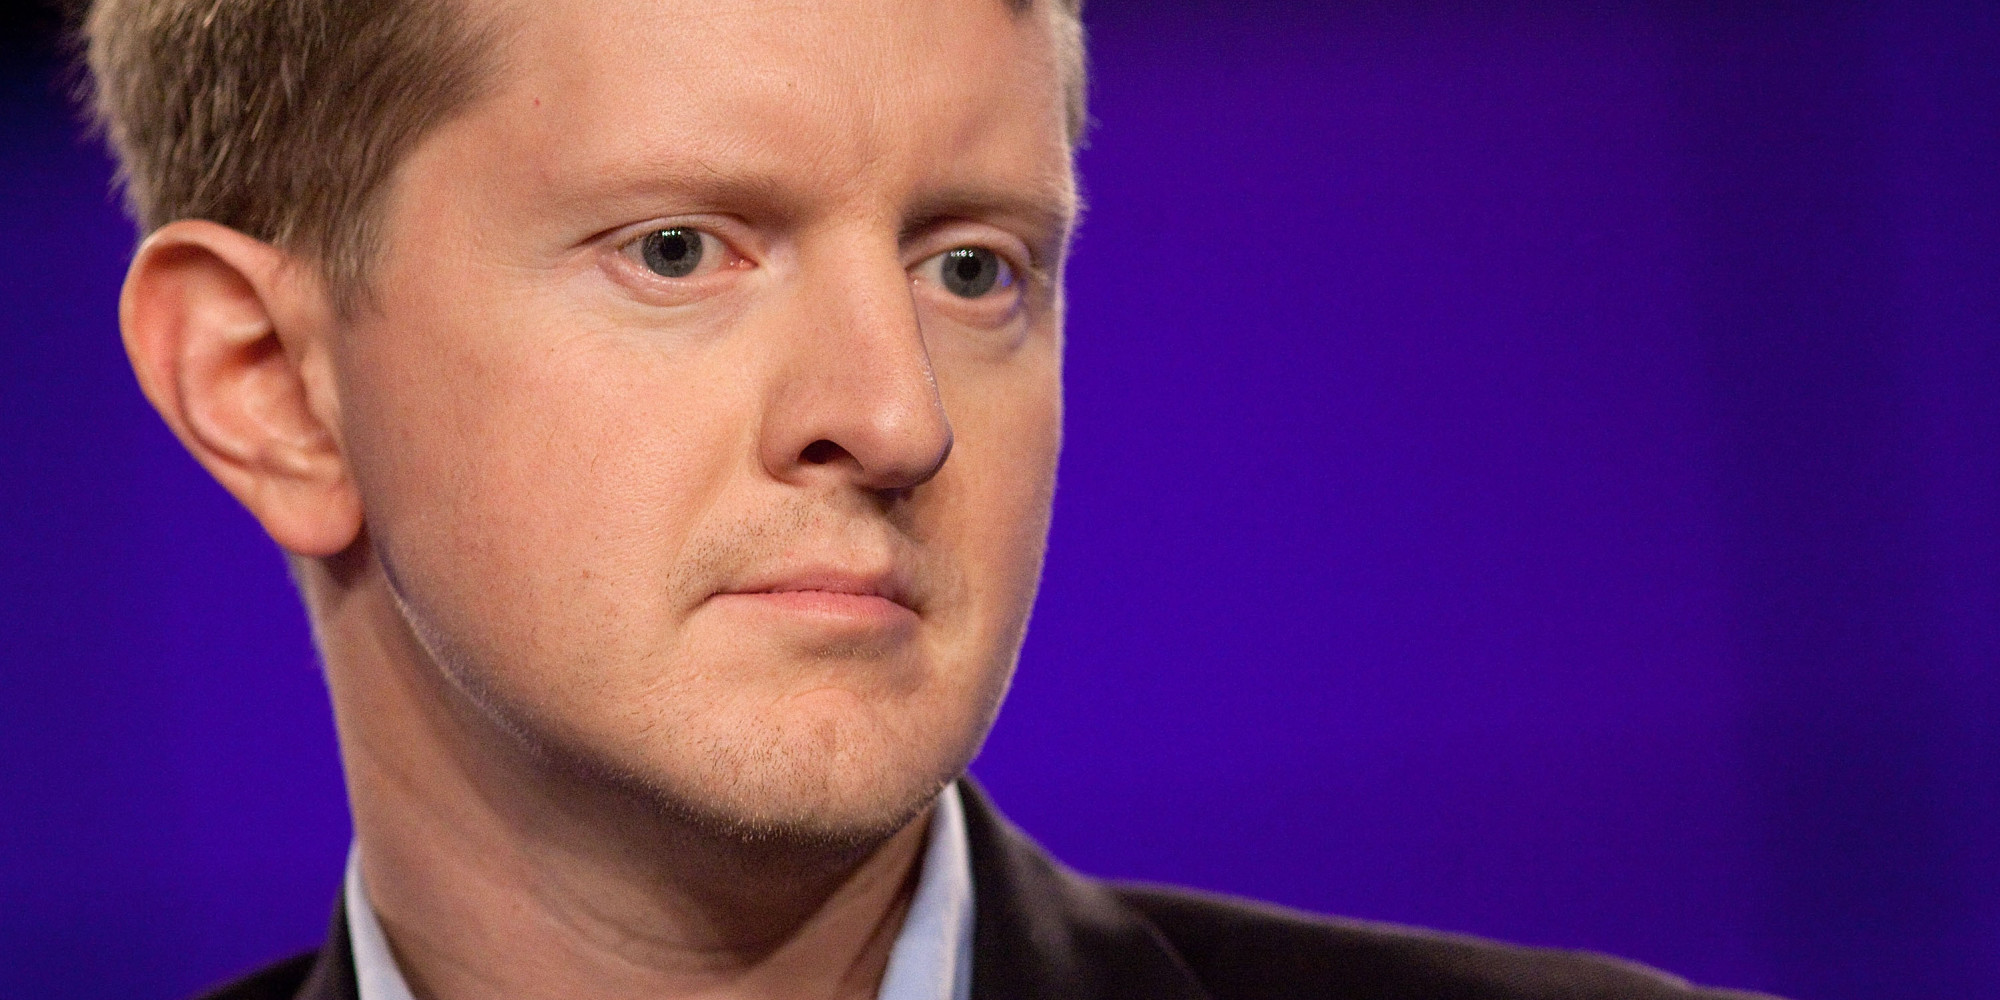 ken jennings the best jeopardy player of all time